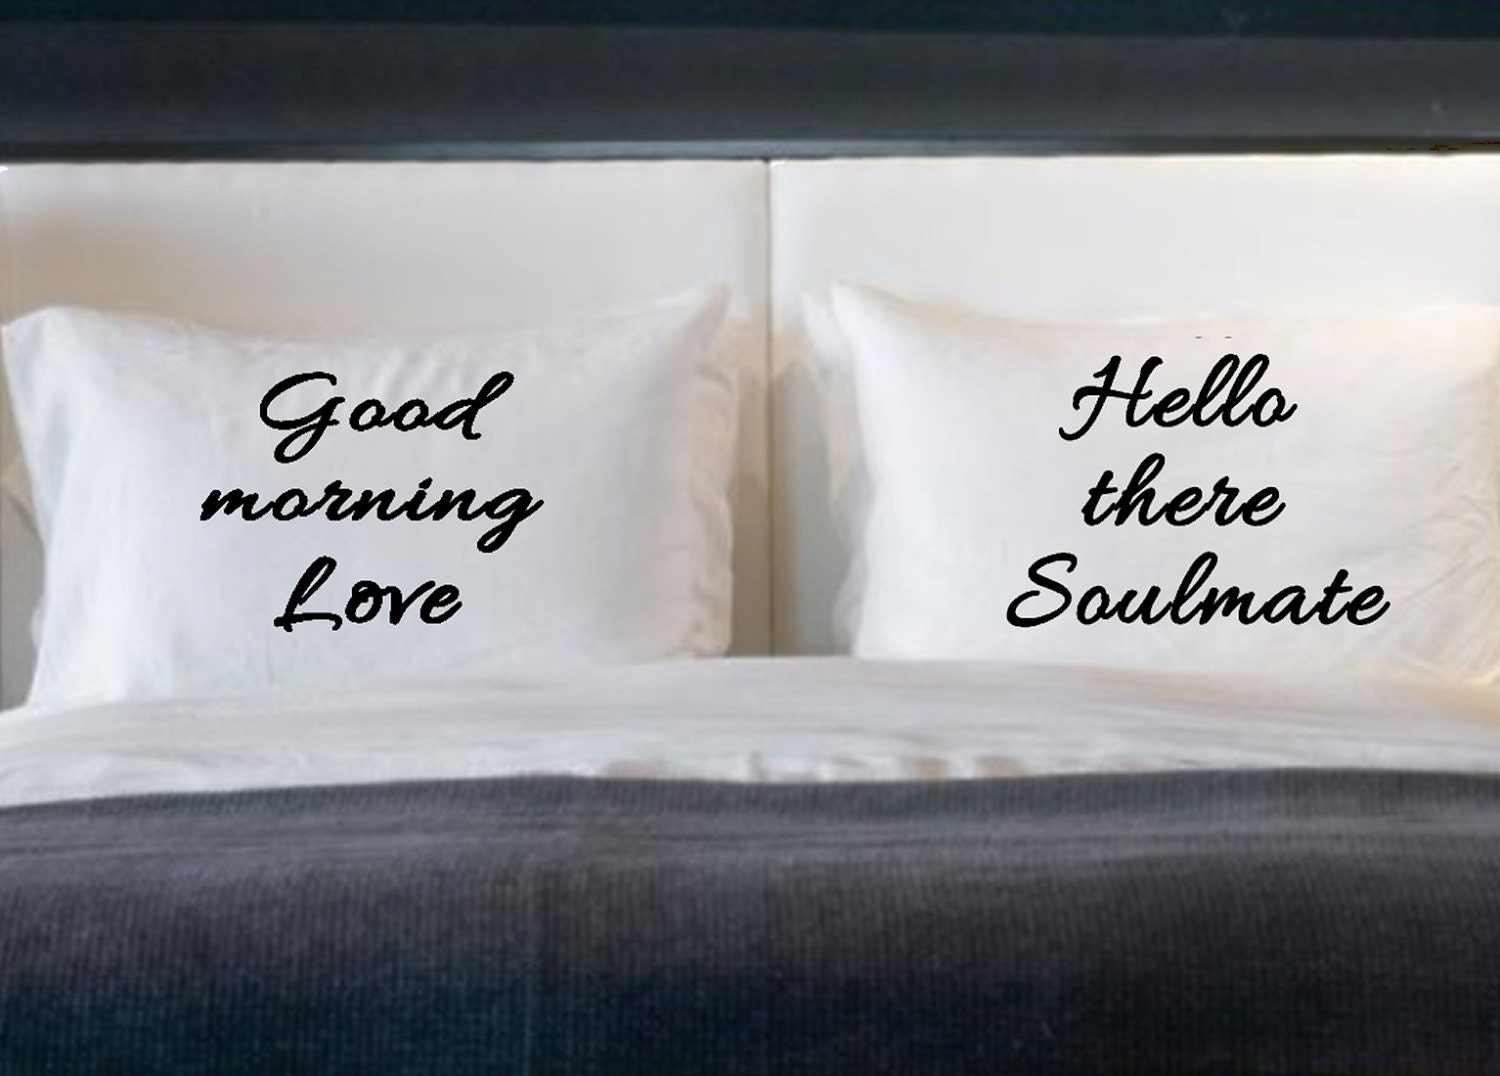 Soulmate Love His And Her Pillow Cases For Standard Bed